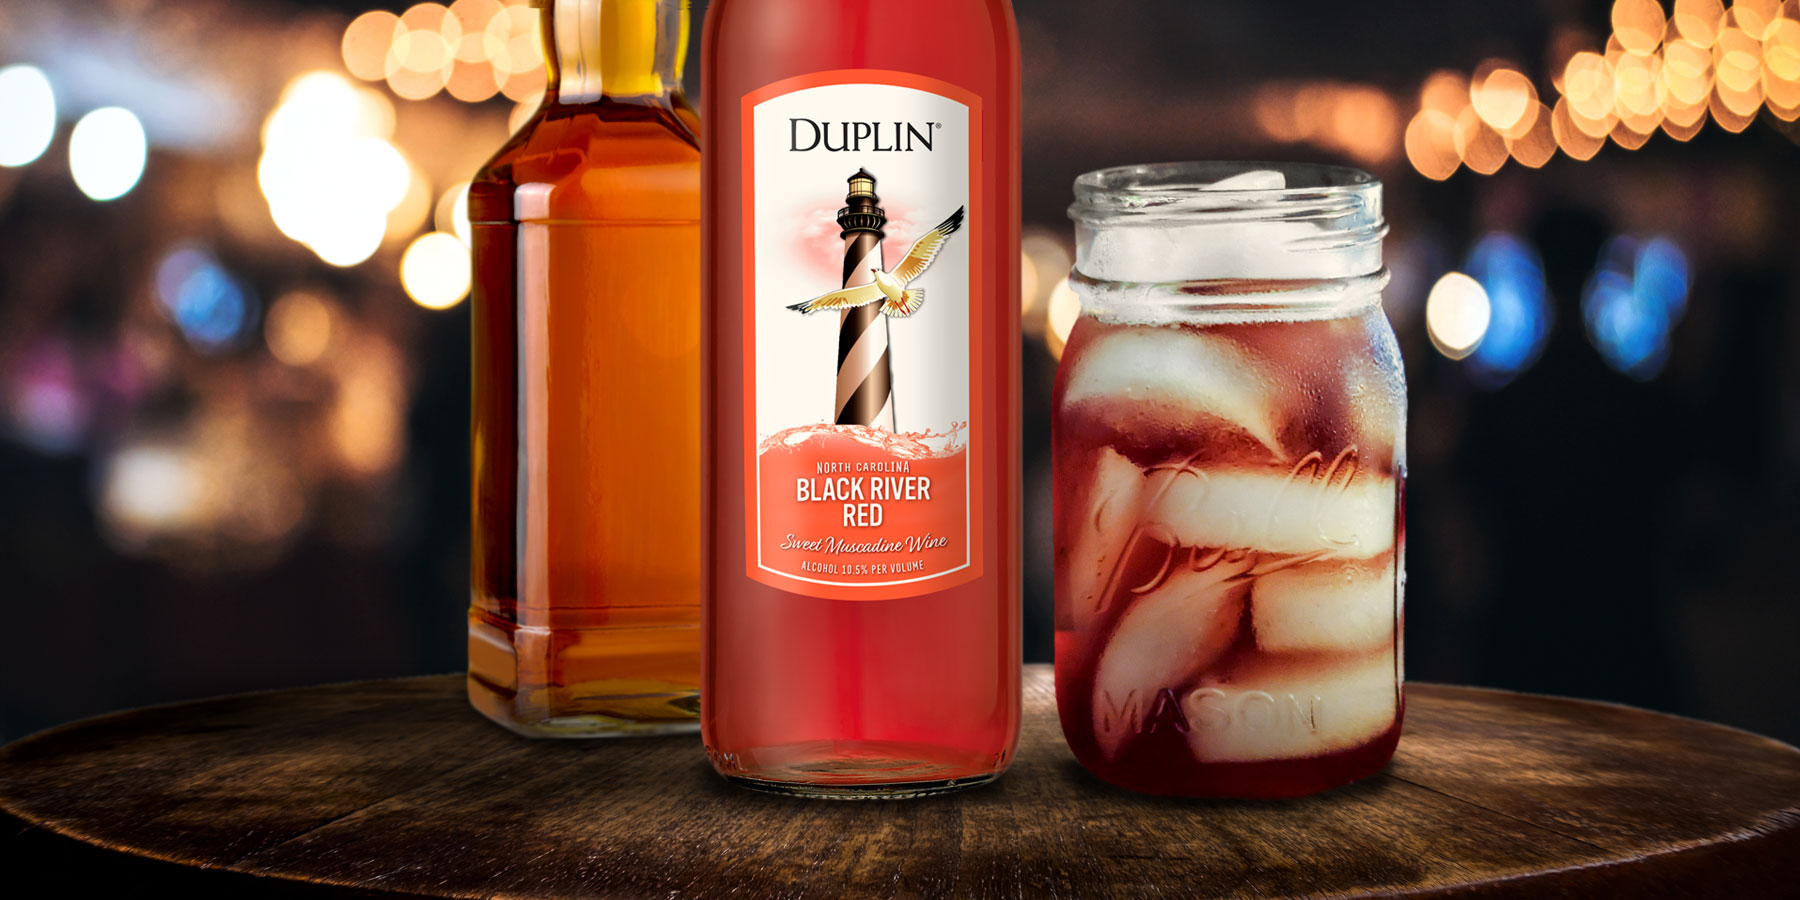 Mix the Duplin Whiskey Sour in a Mason jar